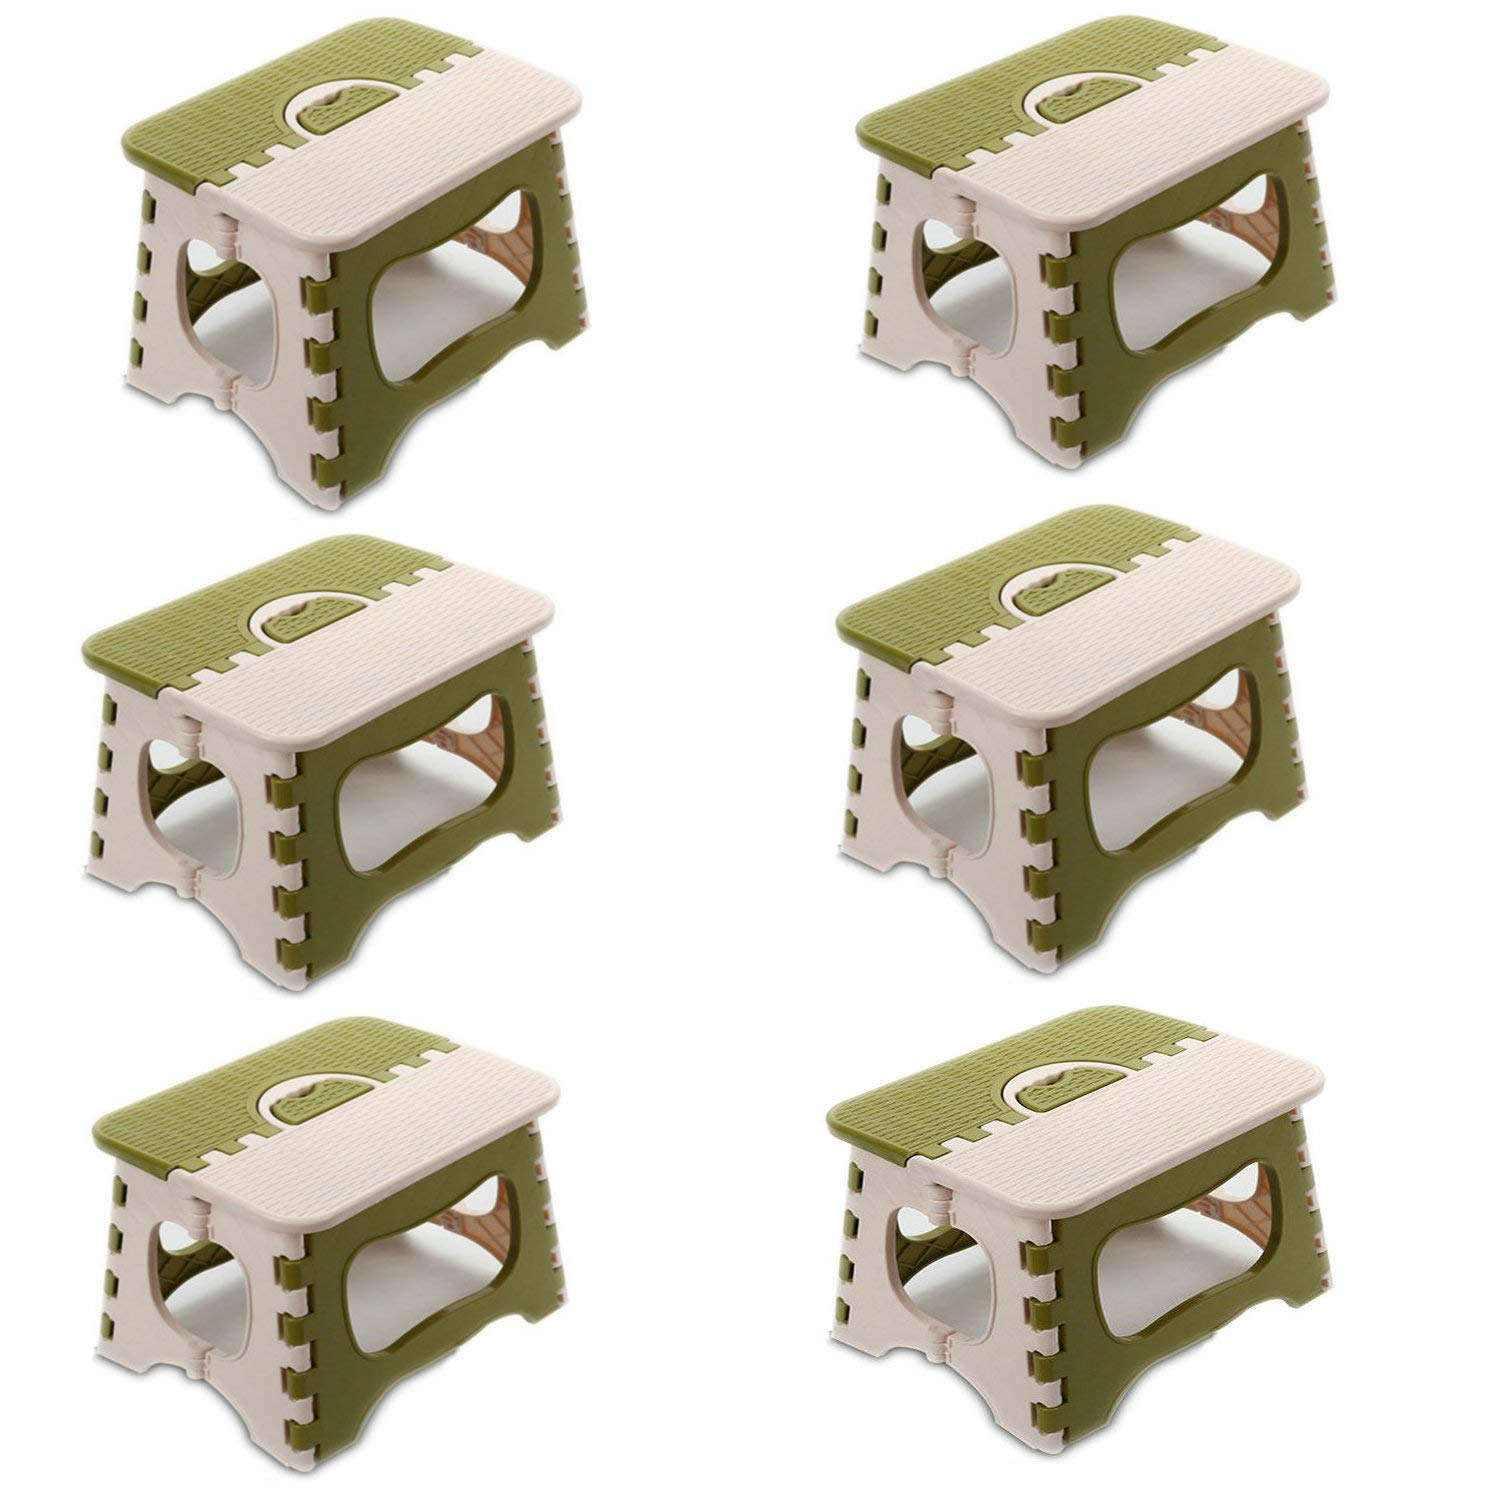 Green 6Pack Folding Step Stool,Lightweight Plastic Folding Step Stool for Kids and Adults with Handles (Khaki, 8Pack)